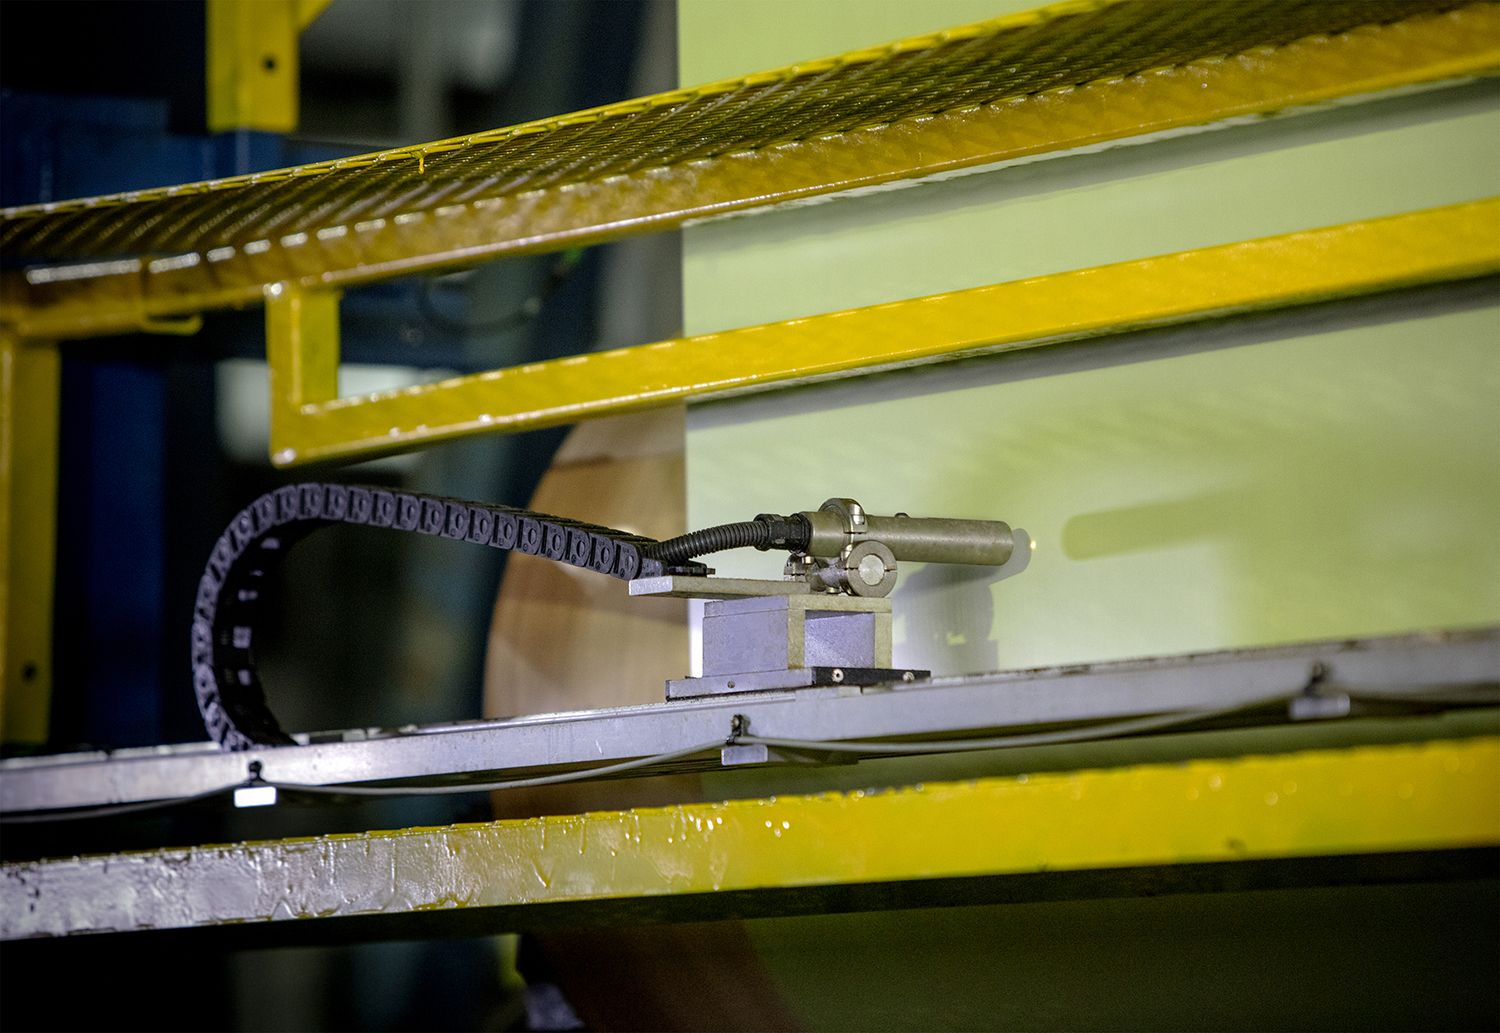 SpecMetrix In-Process Coil Coating Measurement